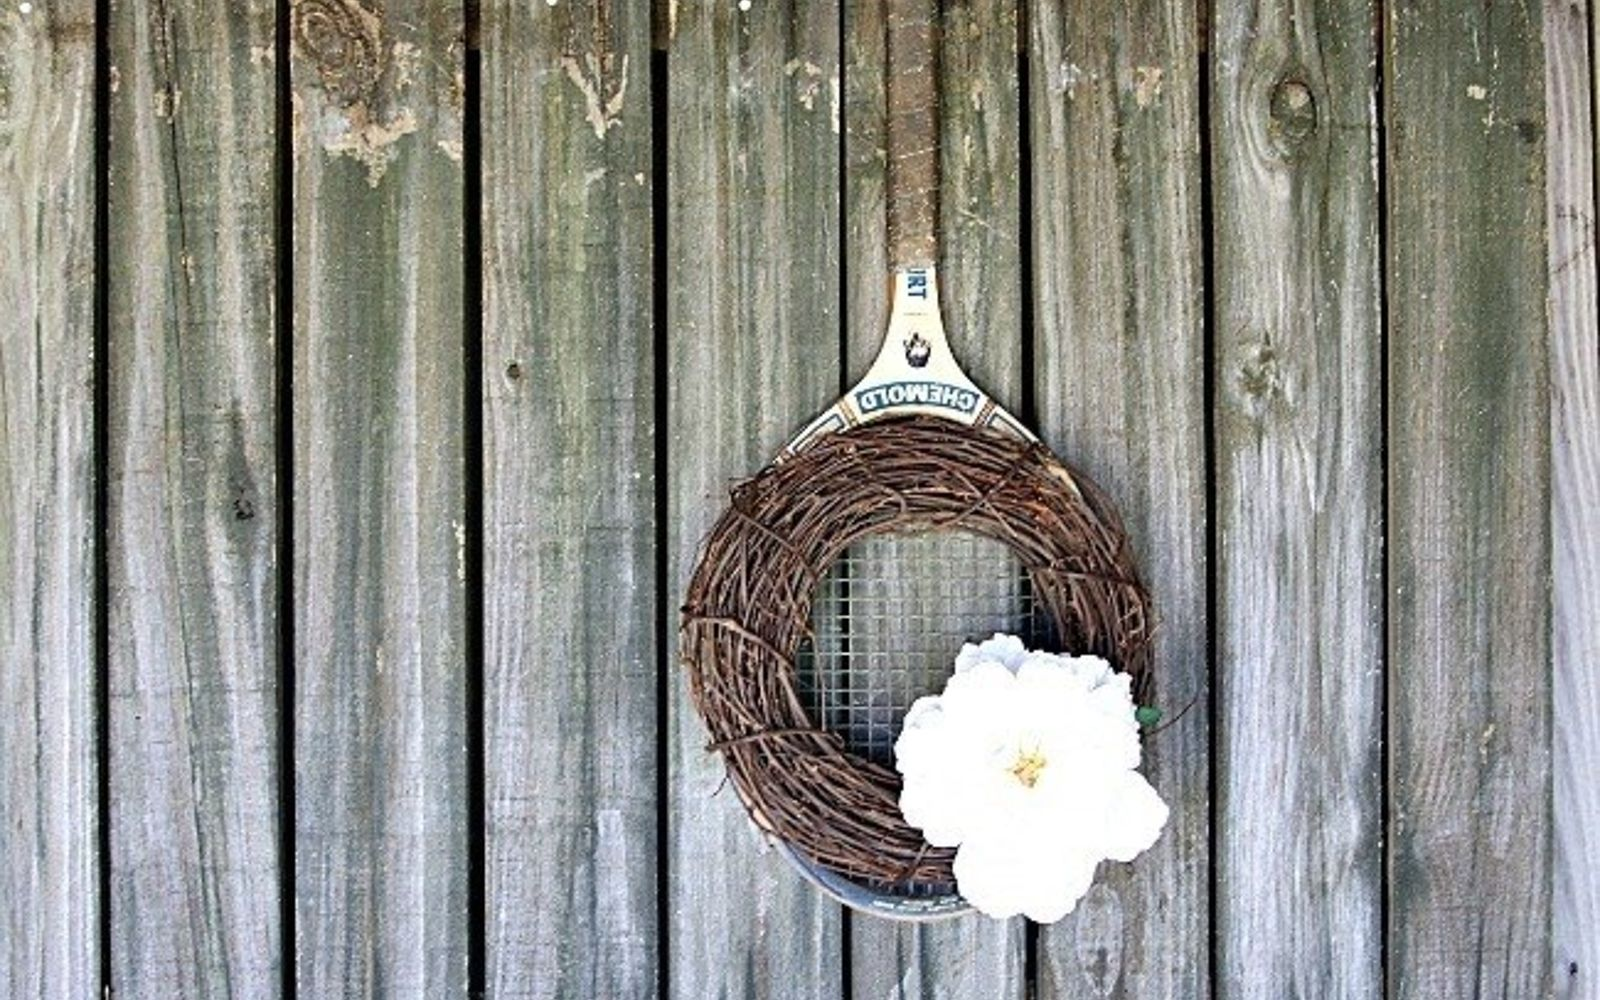 s 31 gorgeous spring wreaths that will make your neighbors smile, crafts, seasonal holiday decor, wreaths, Use an old tennis racket